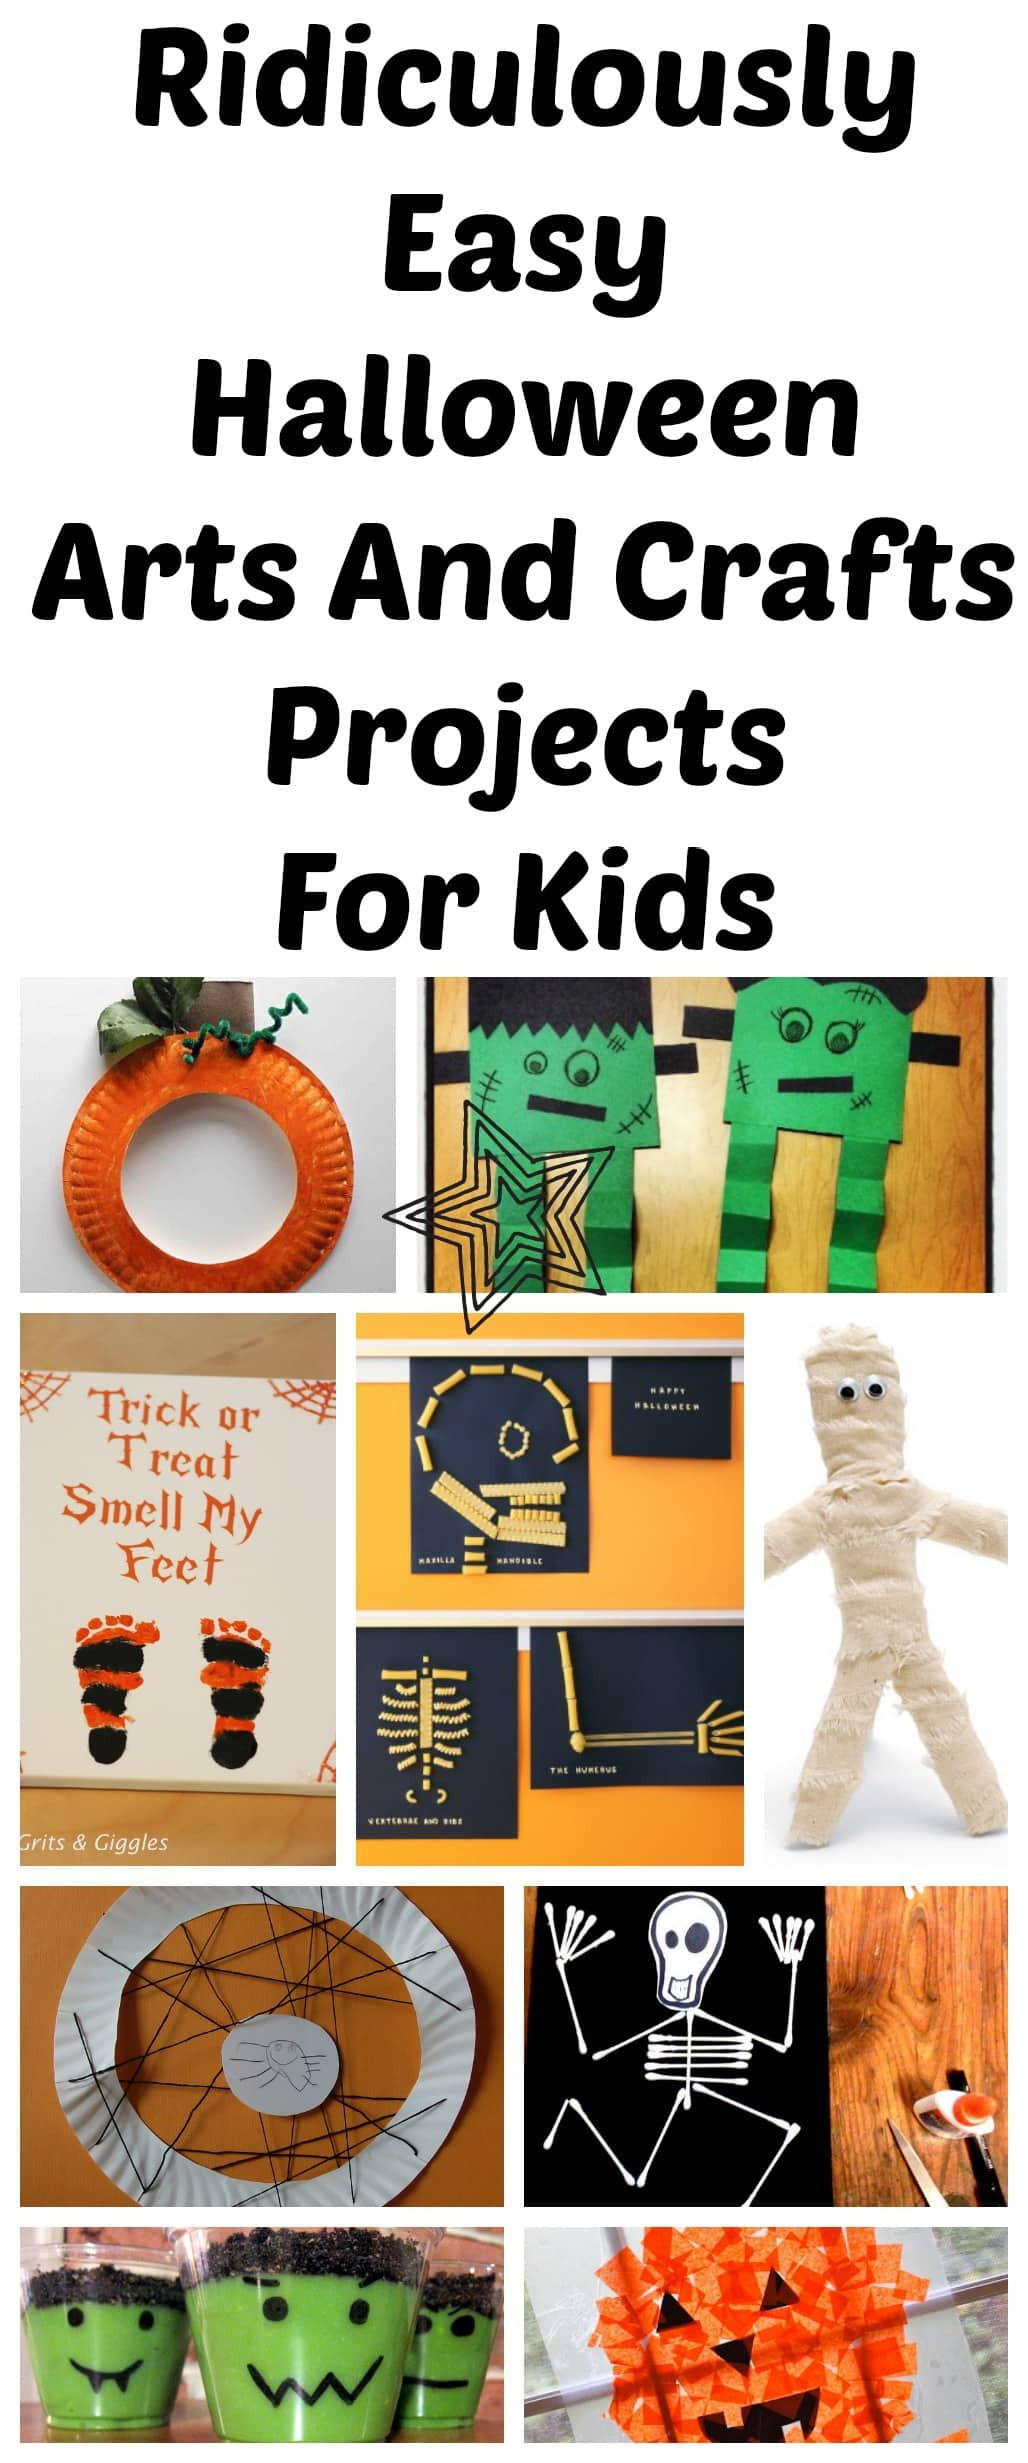 Halloween Craft Ideas Kids  10 Ridiculously Easy Halloween Arts And Crafts Projects To